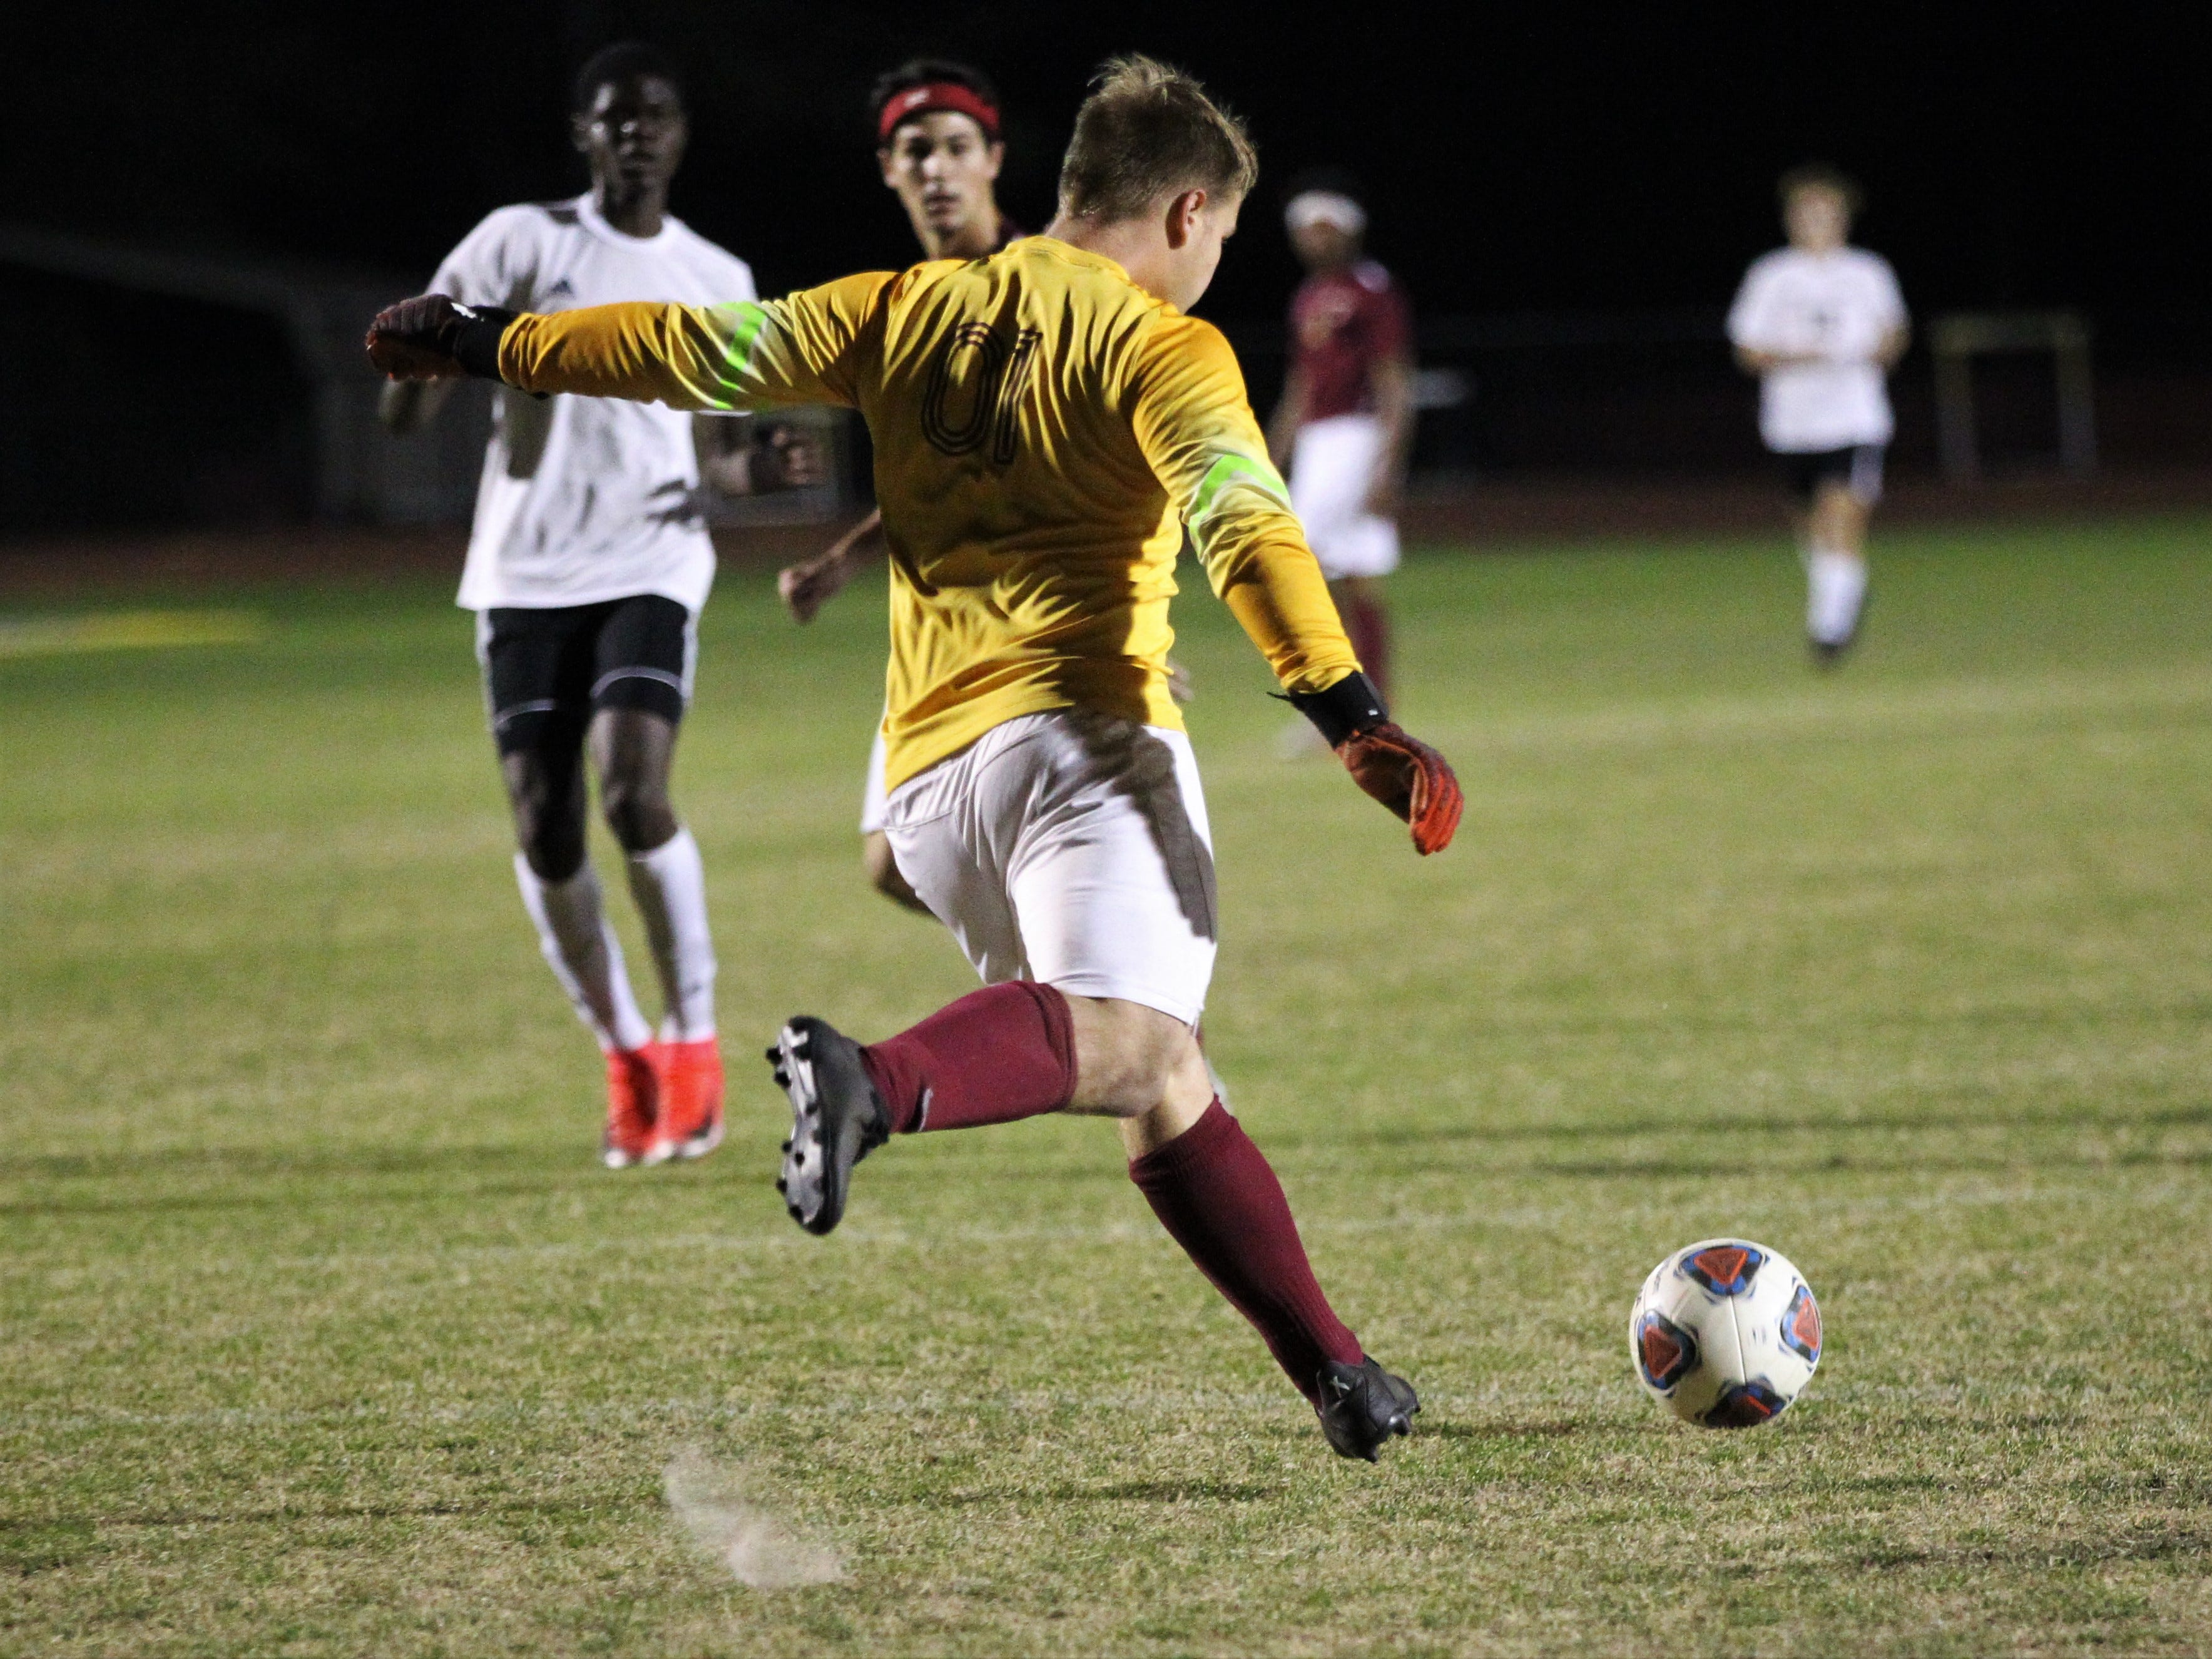 Florida High keeper Hayden Farrell clears a ball as Florida High's boys soccer team beat South Walton 2-0 during a Region 1-2A quarterfinal on Feb. 6, 2018.